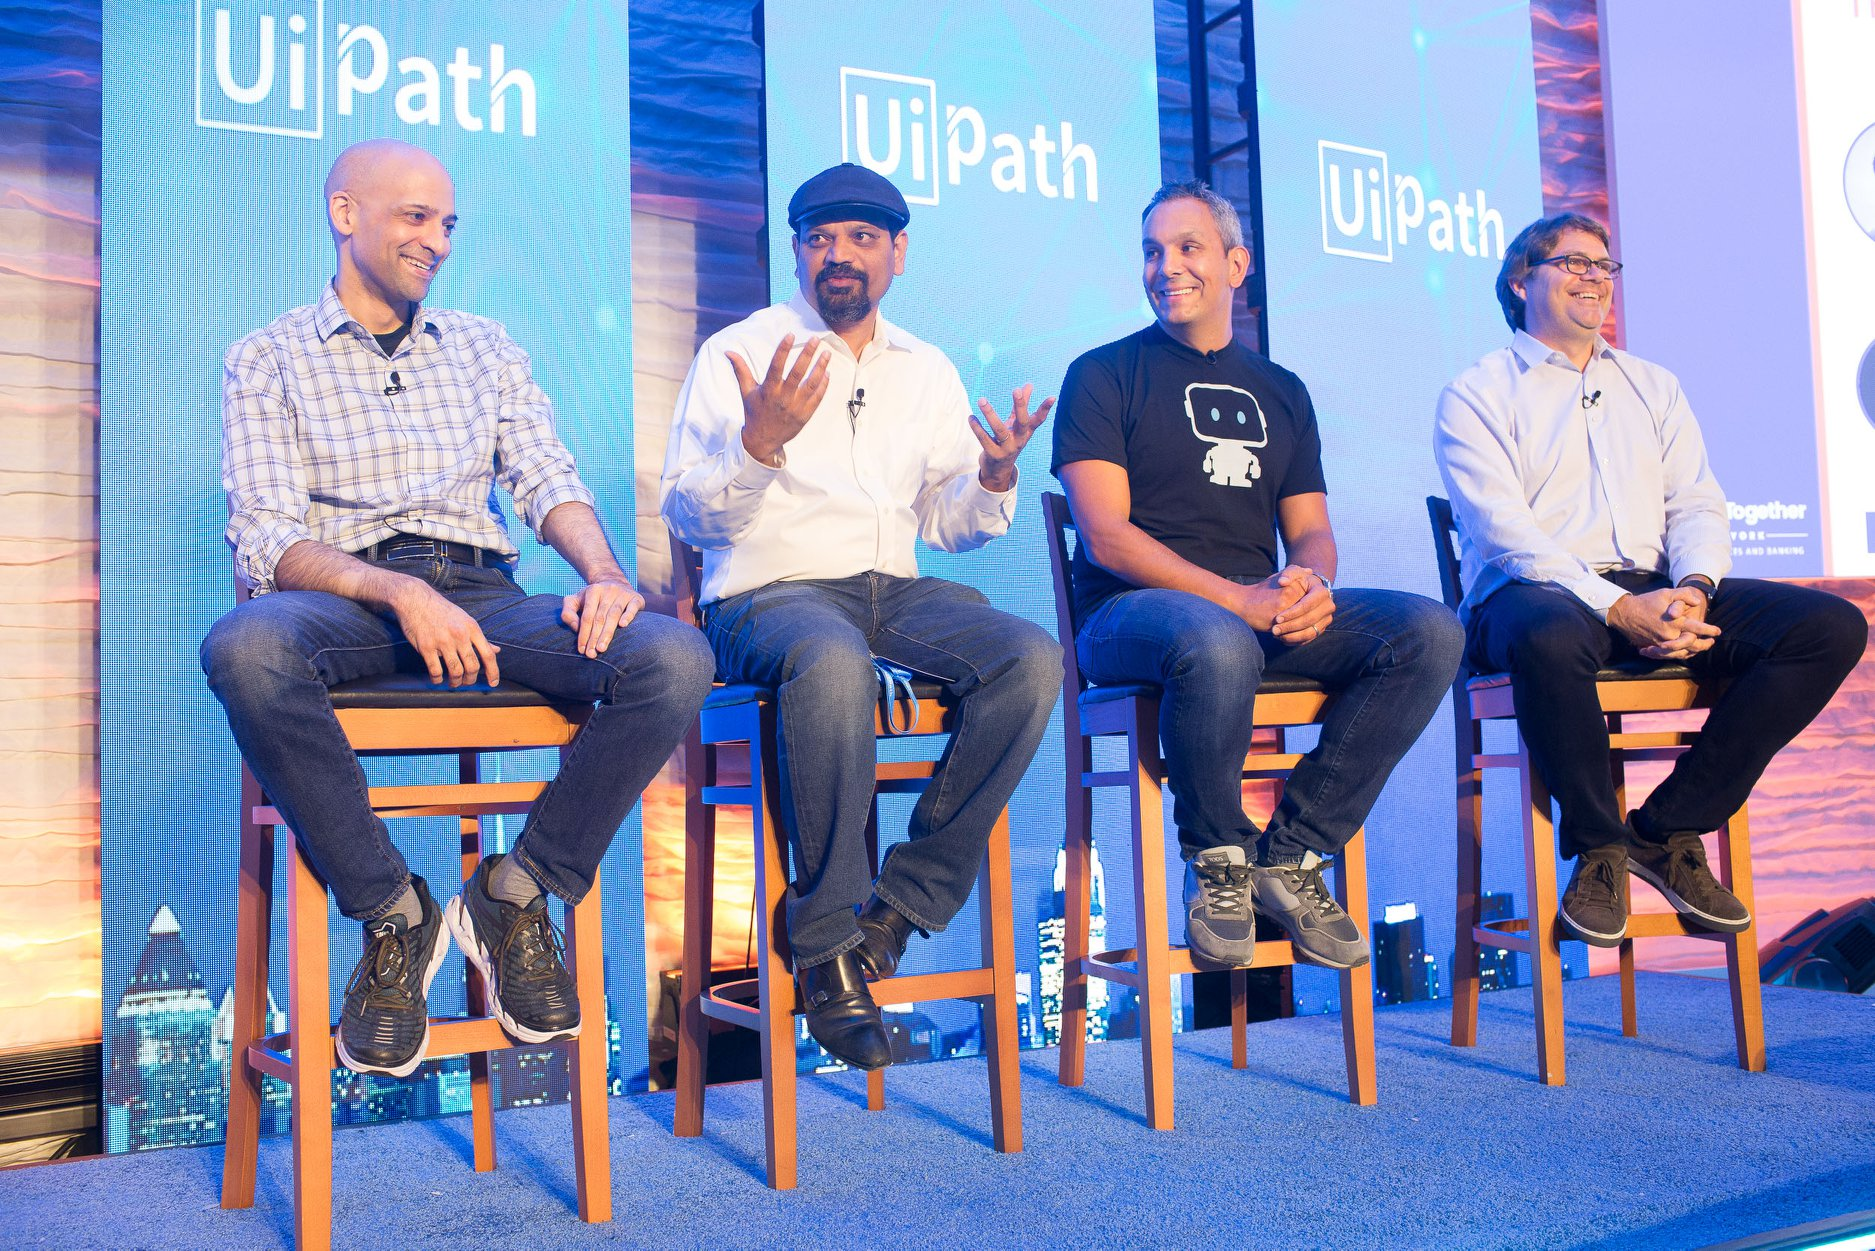 uipath-together-new-york-3